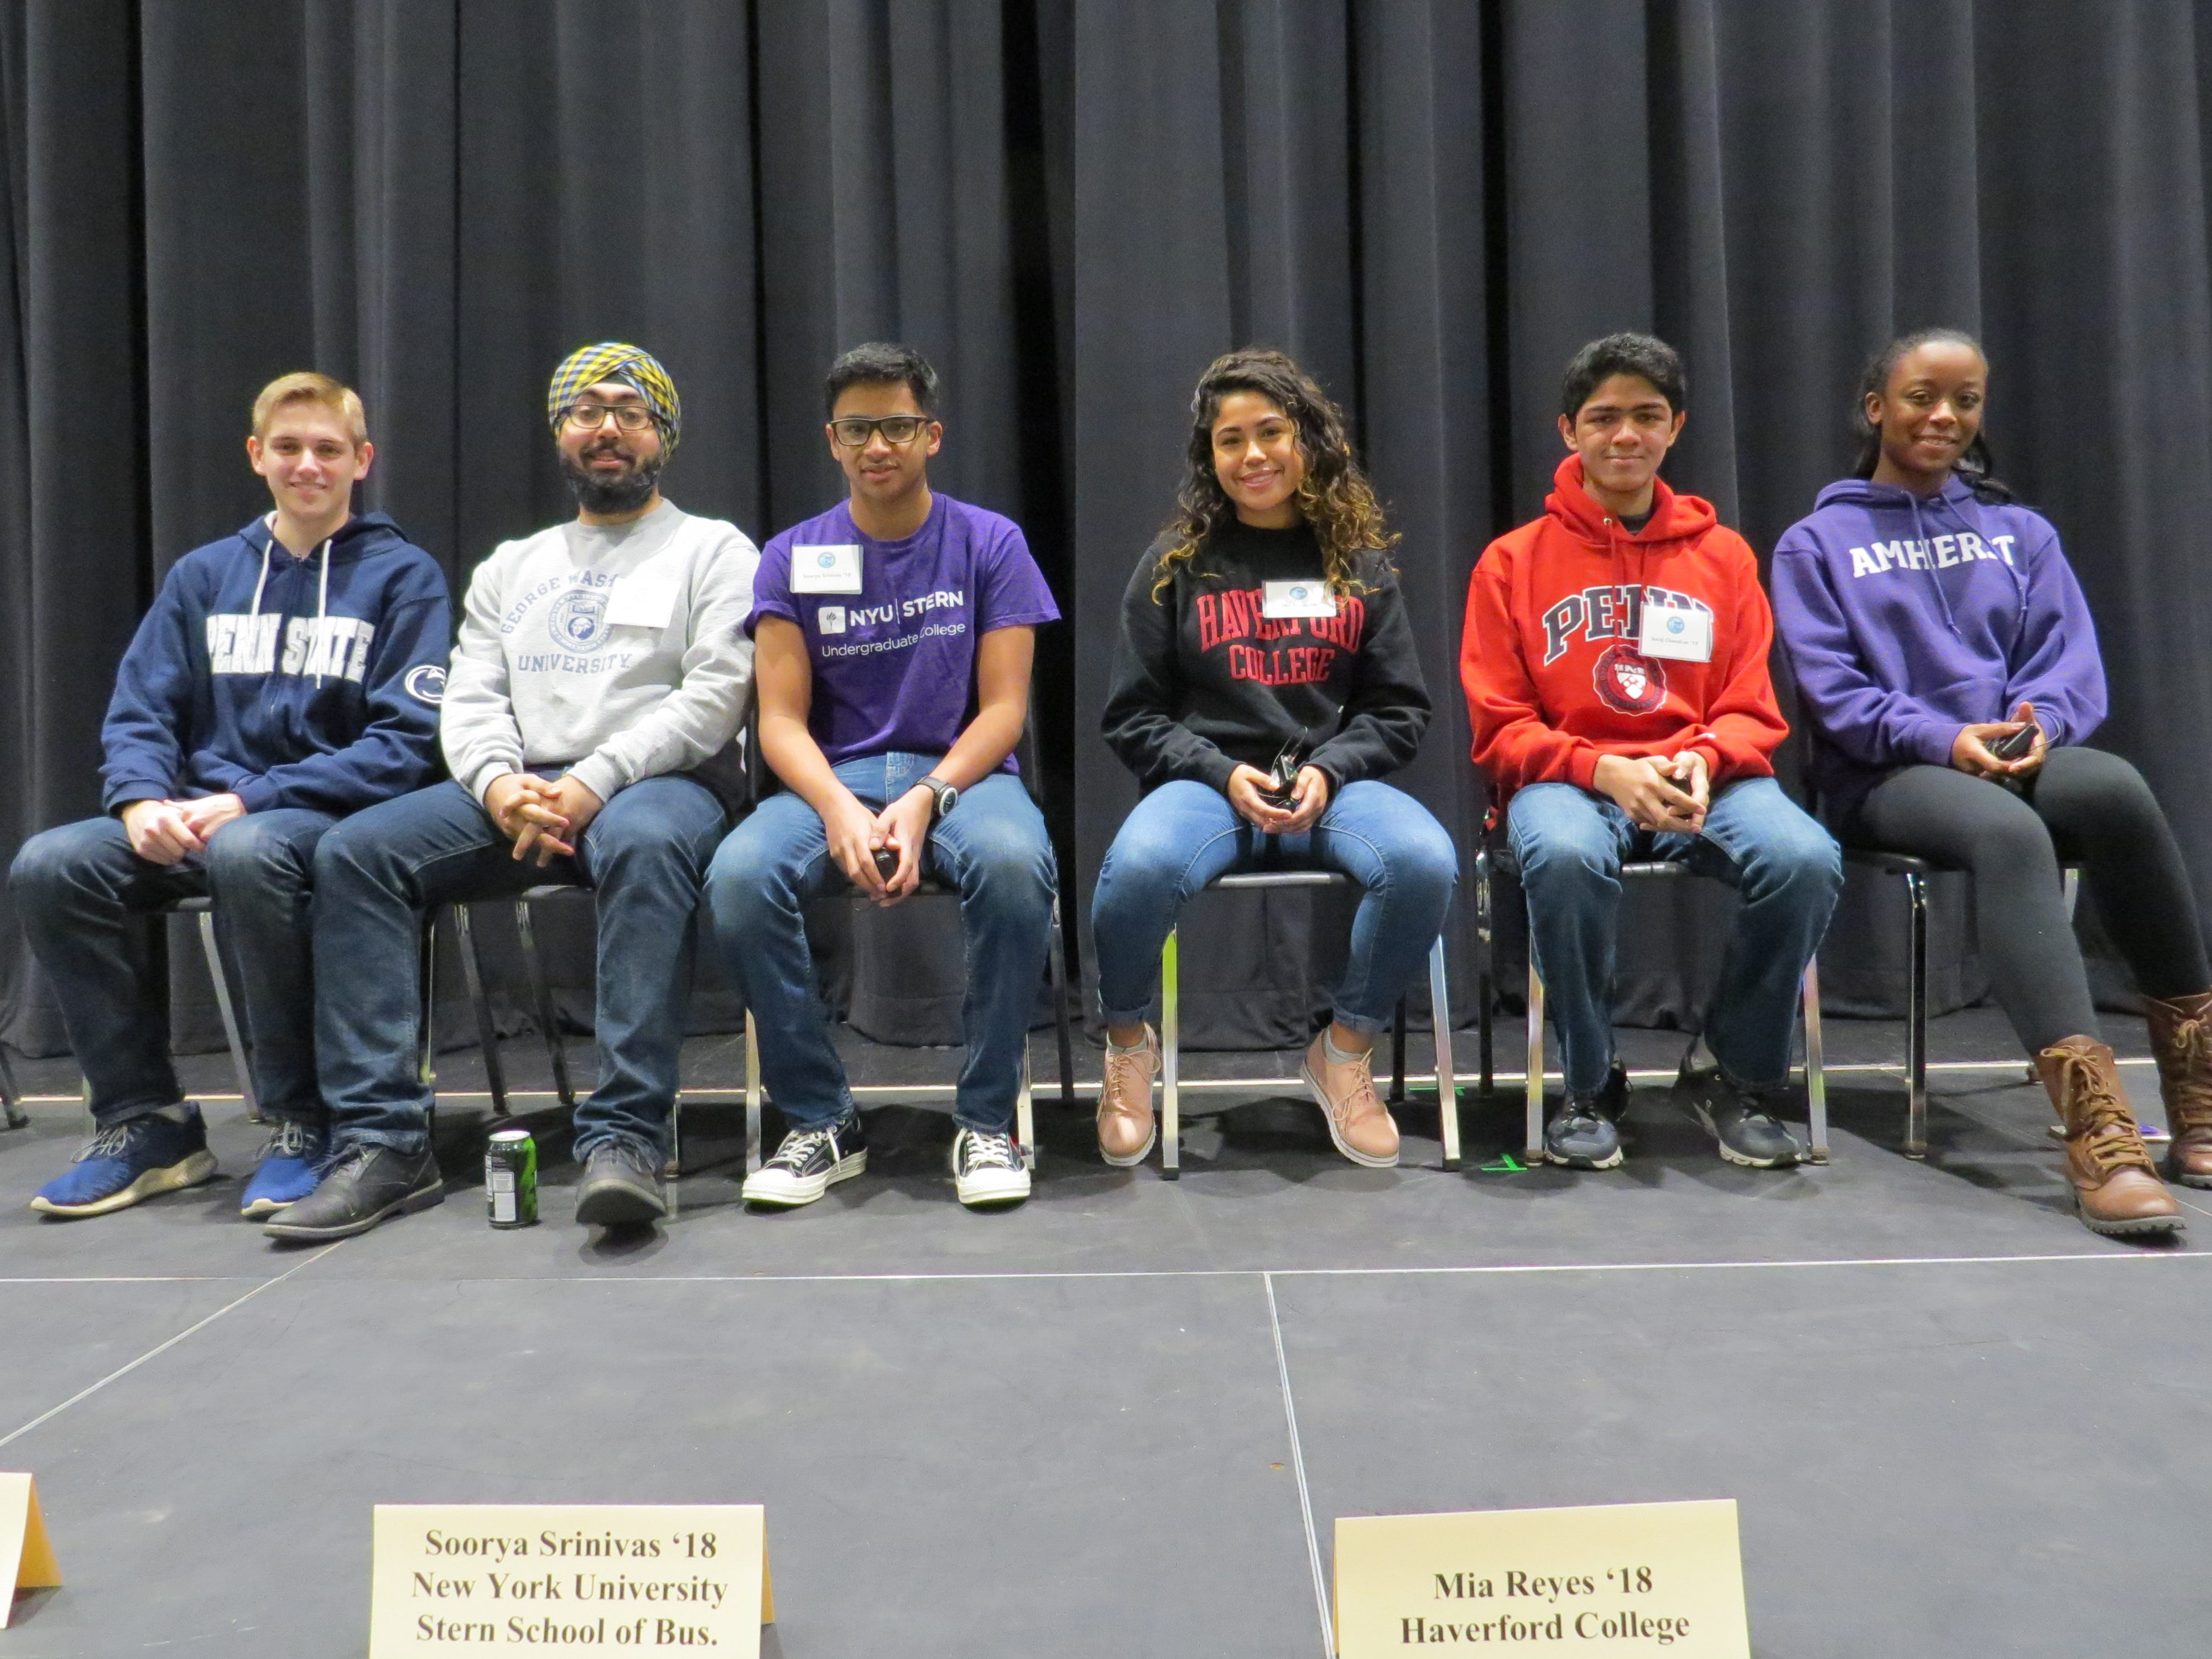 This year's panel included, from left: CJ Stueck of Scotch Plains, Penn State University, Schreyer Honors College, Simu Singh of Monroe, George Washington University, Soorya Srinivas of Edison, New York University, Stern School of Business, Mia Reyes of Piscataway,(Haverford College, Suraj Chandran of Edison, University of Pennsylvania and Lauren Kisare of Bridgewater, Amherst College.